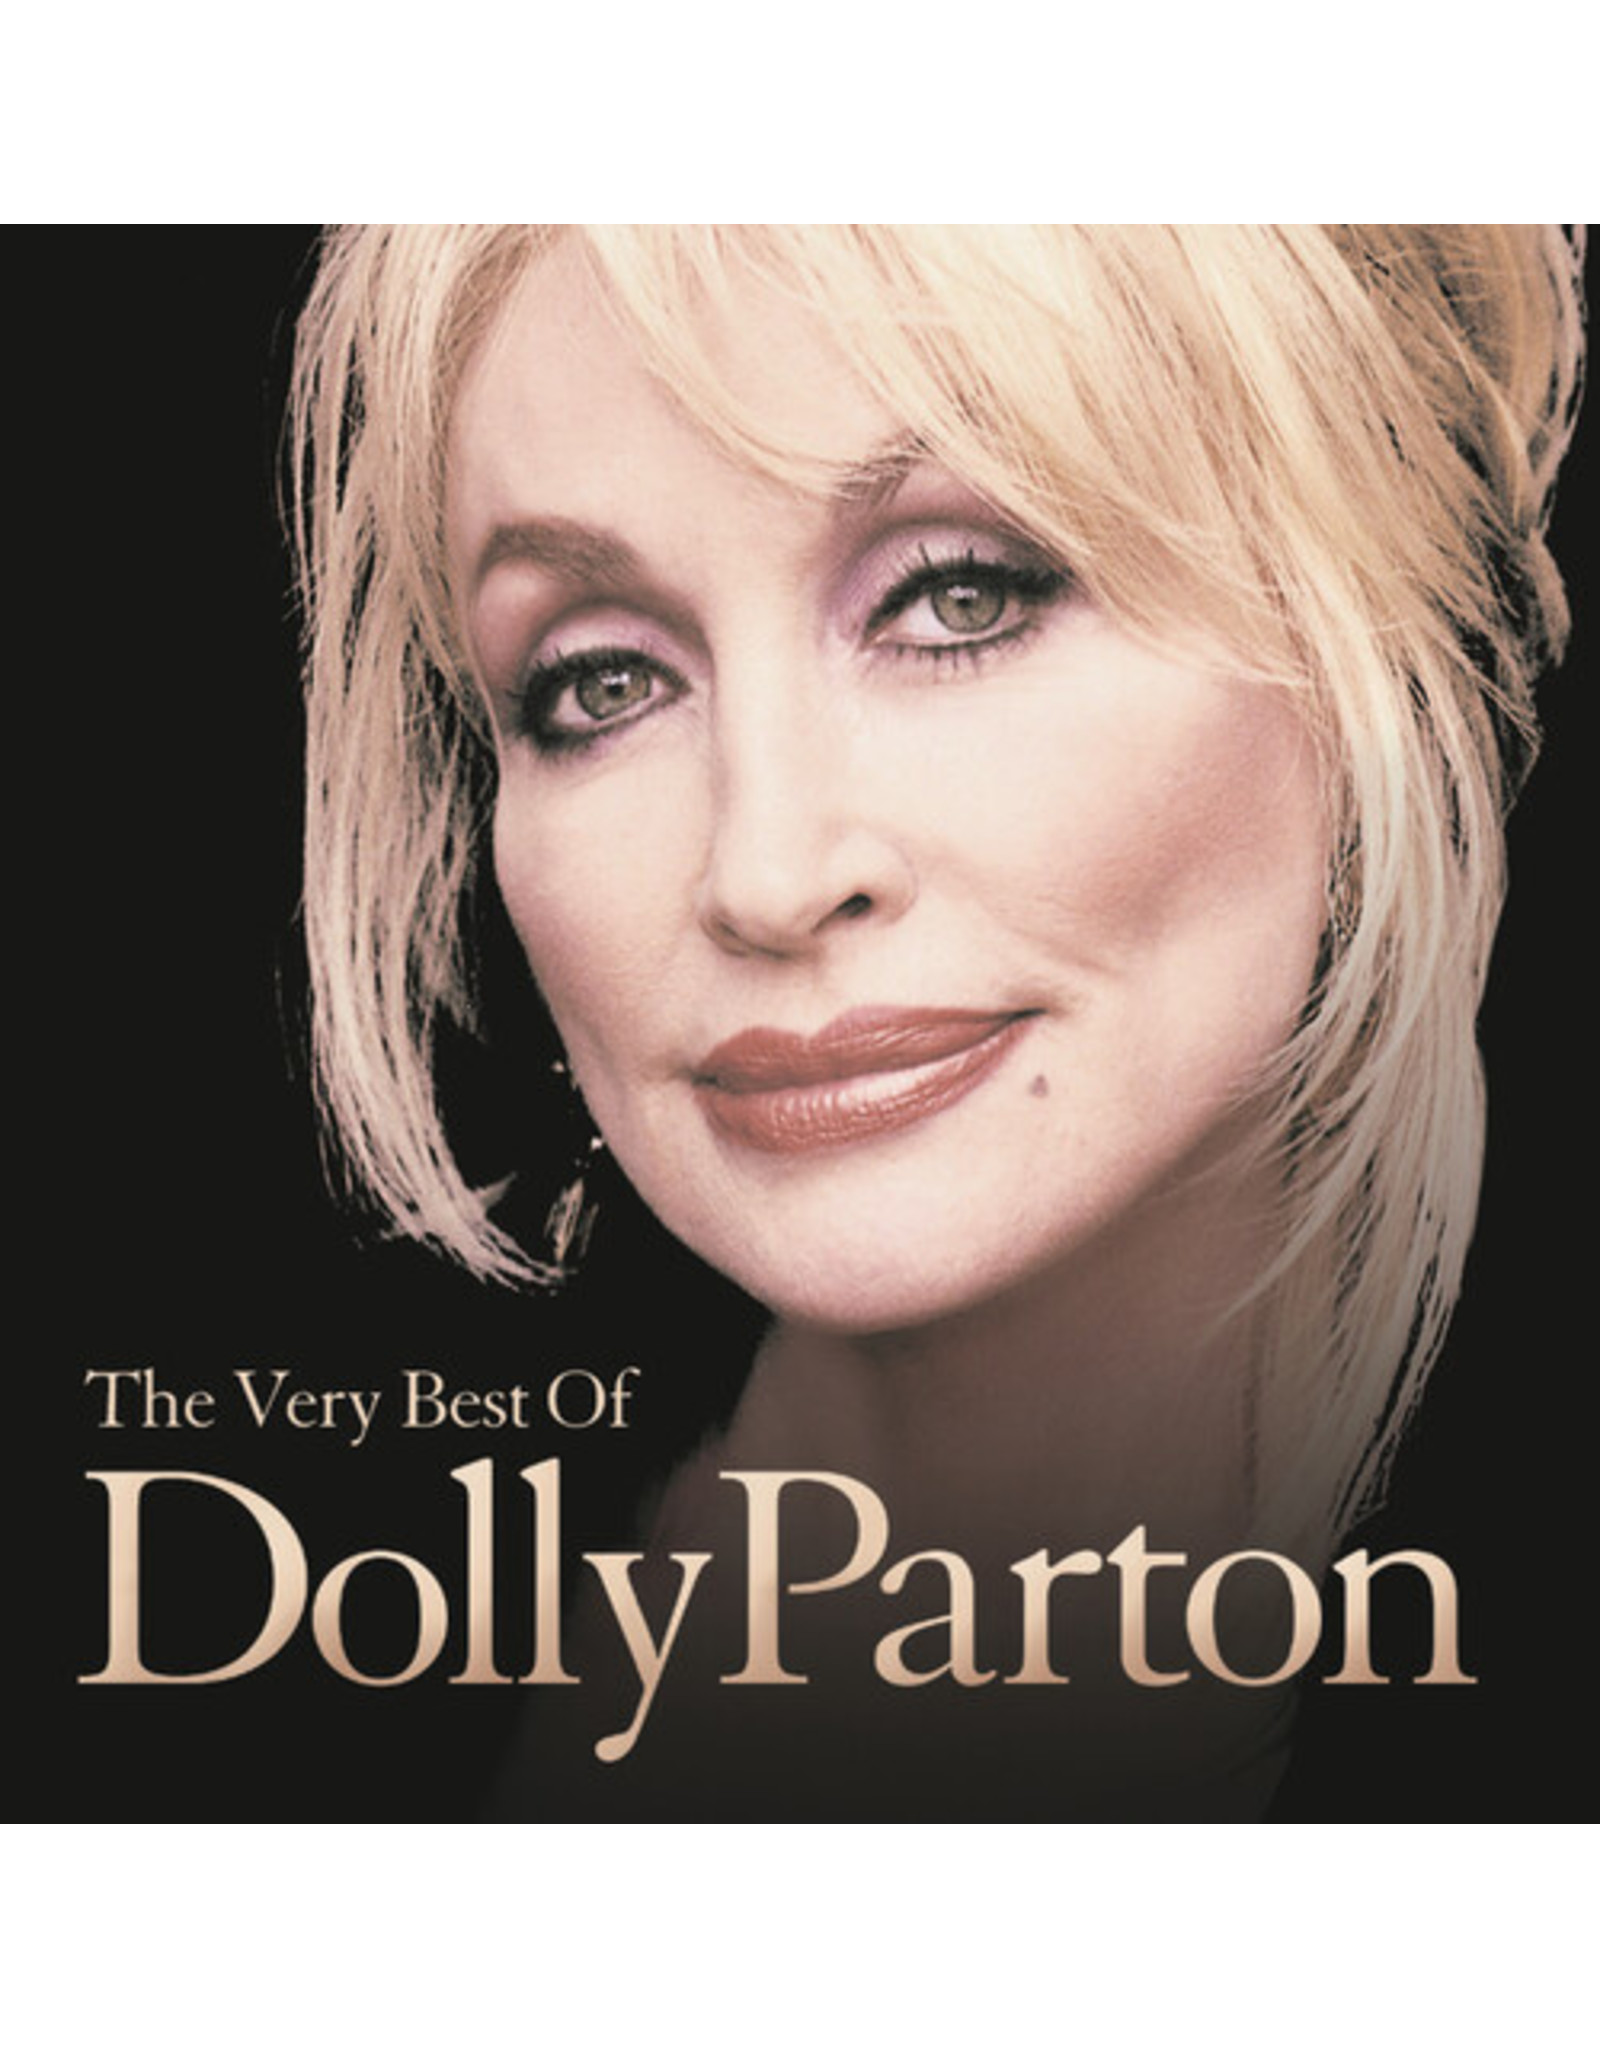 New Vinyl Dolly Parton - The Very Best Of 2LP